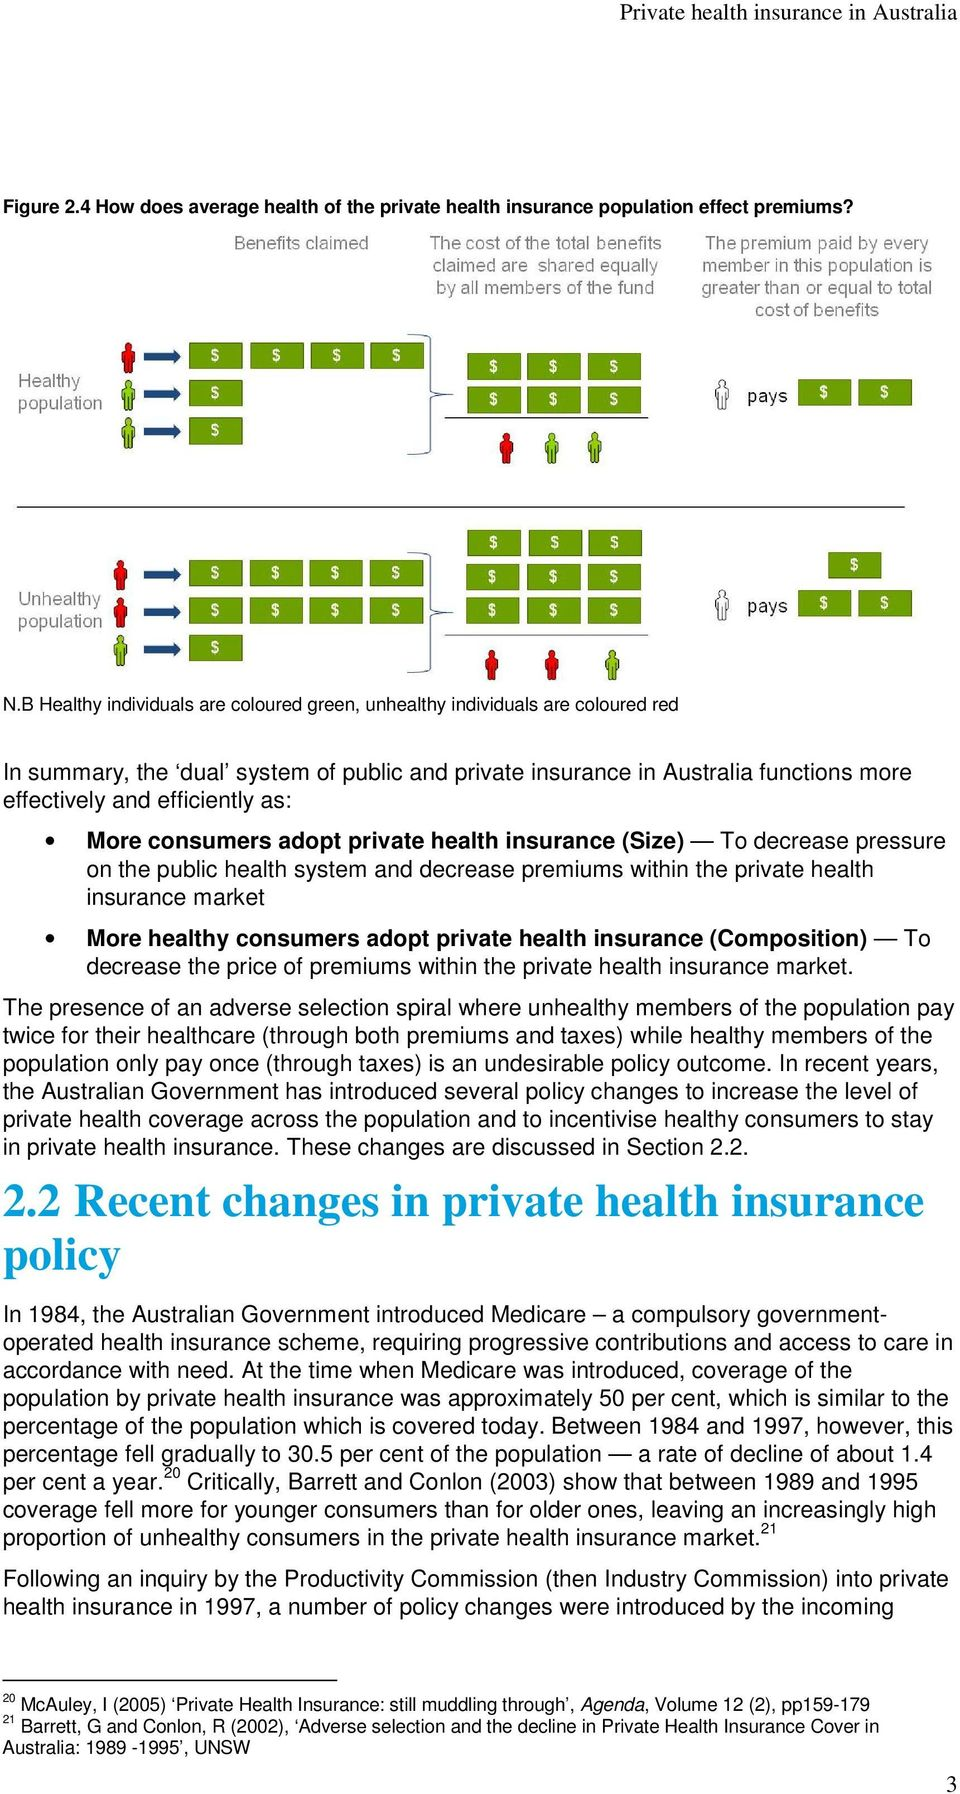 as: More consumers adopt private health insurance (Size) To decrease pressure on the public health system and decrease premiums within the private health insurance market More healthy consumers adopt